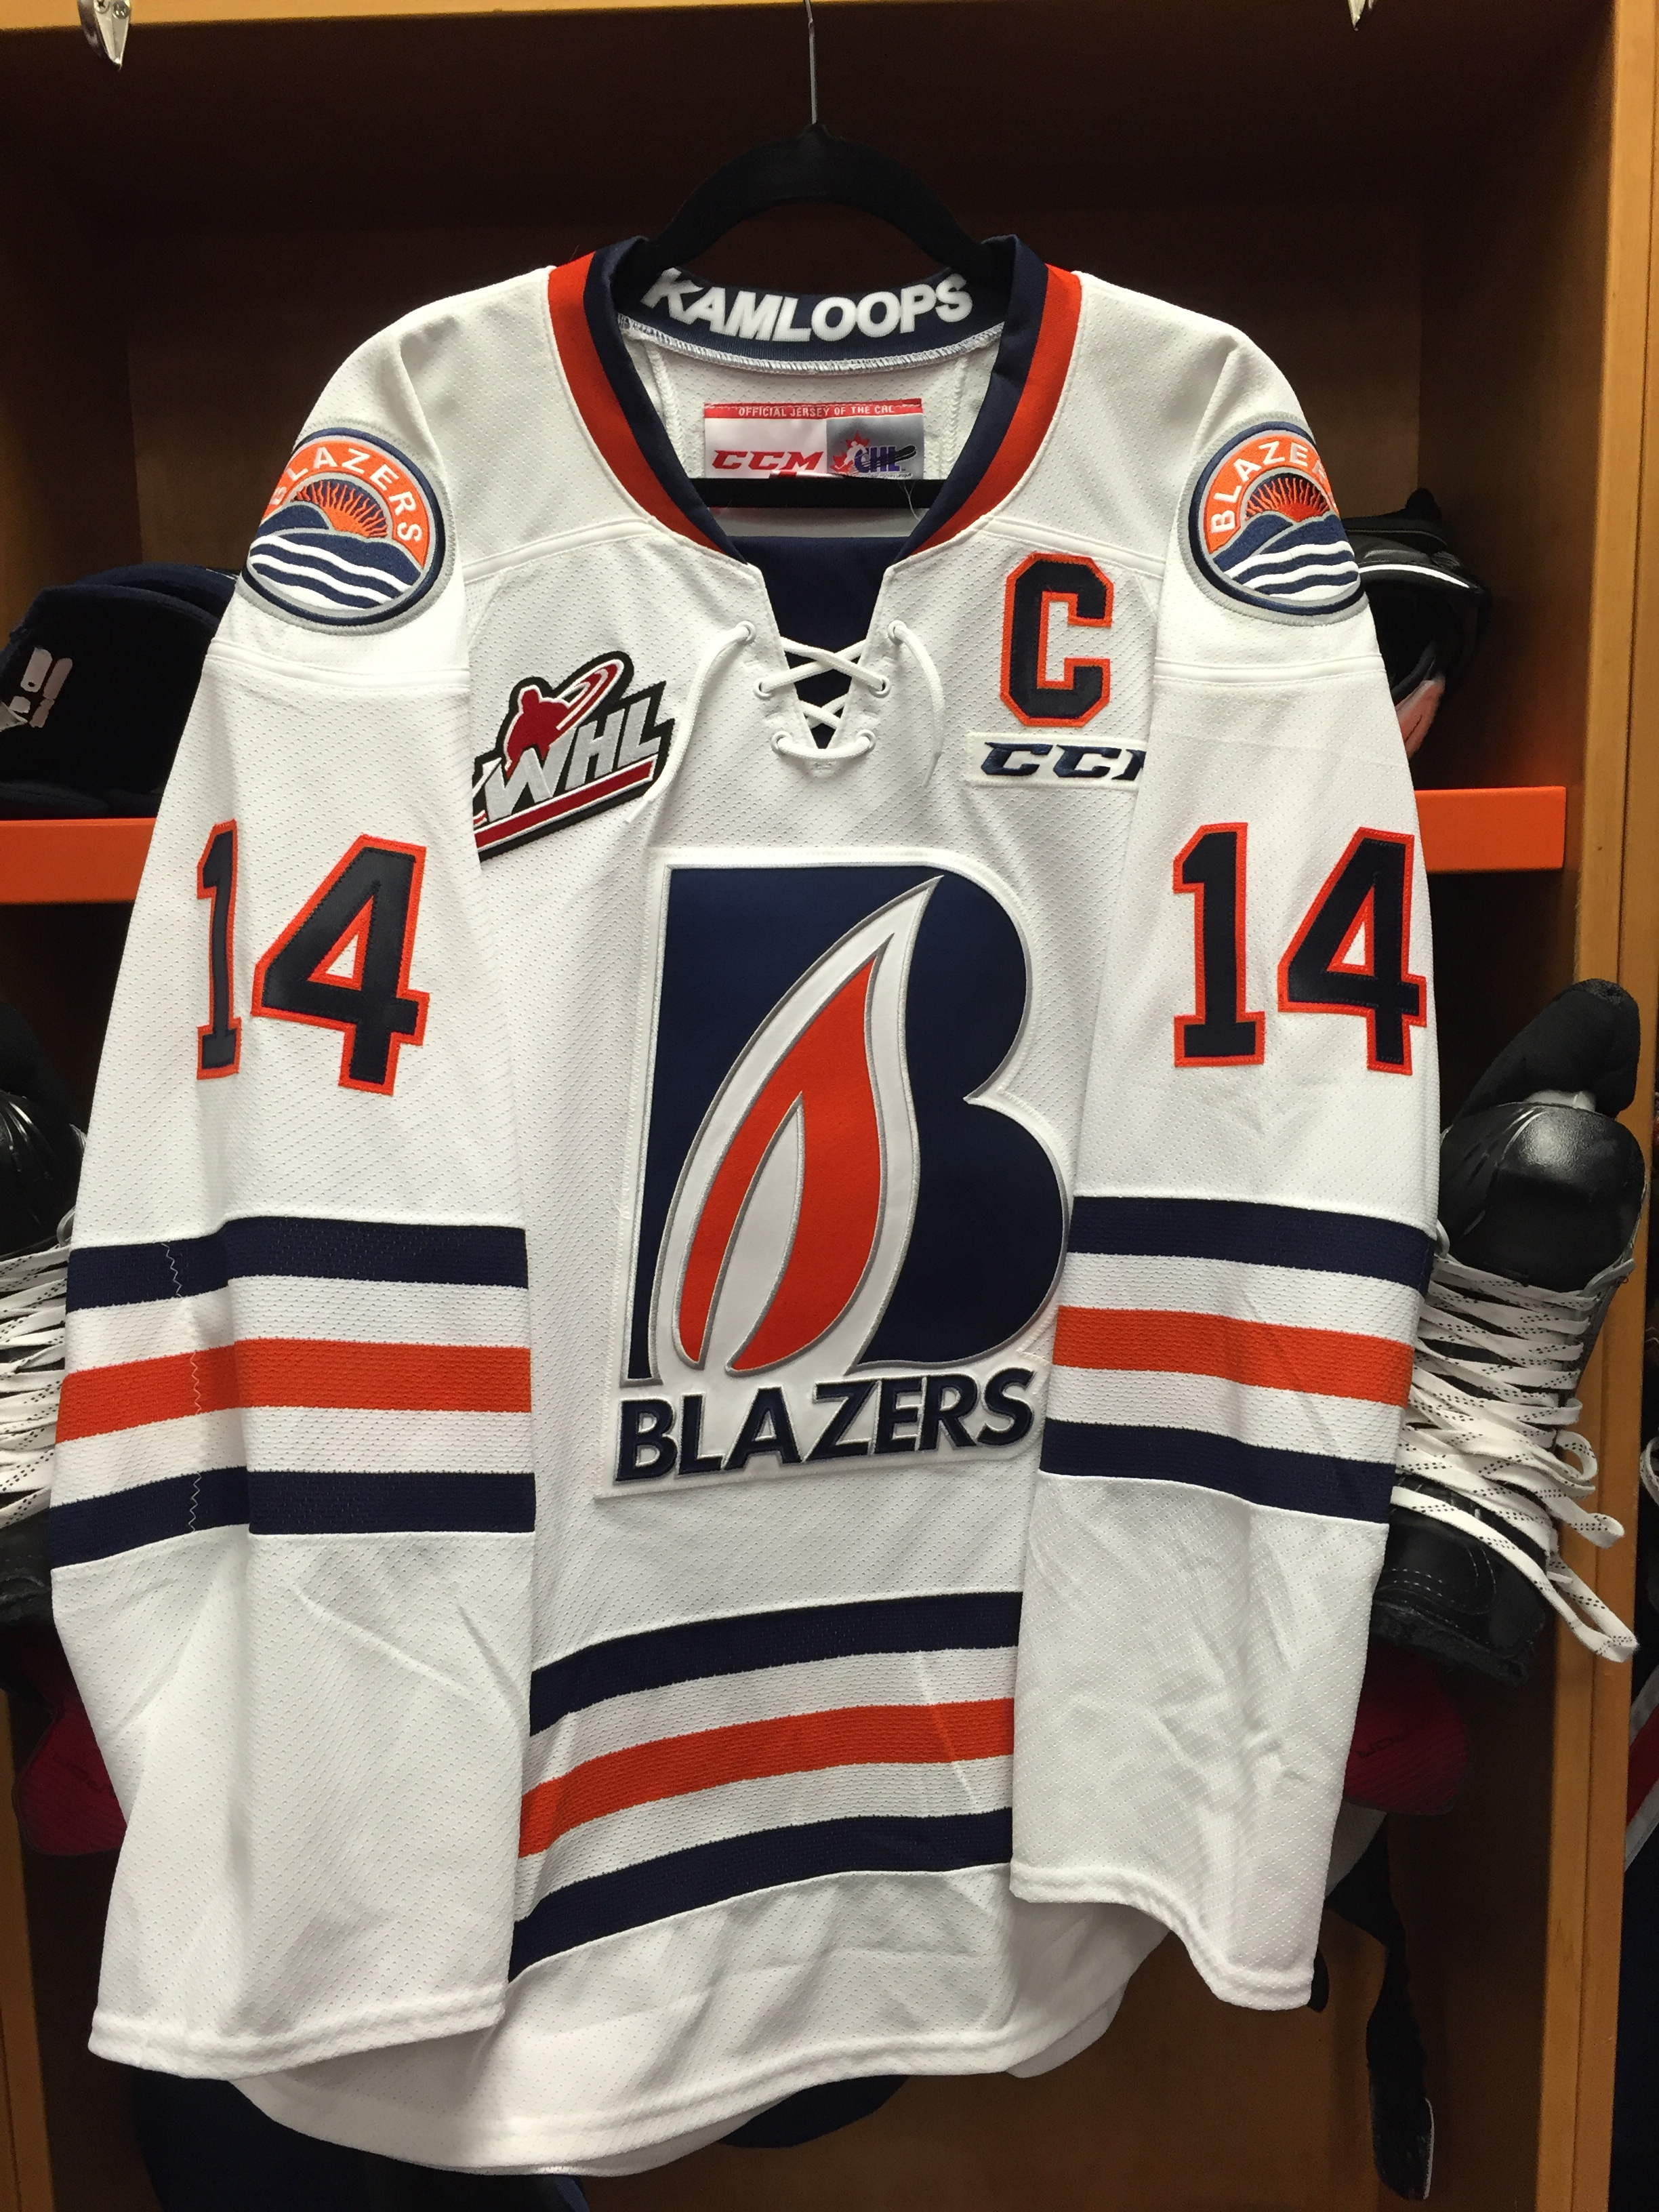 Kamloops Blazers New Jersey - September 24 2015 Photo On OurSports Central